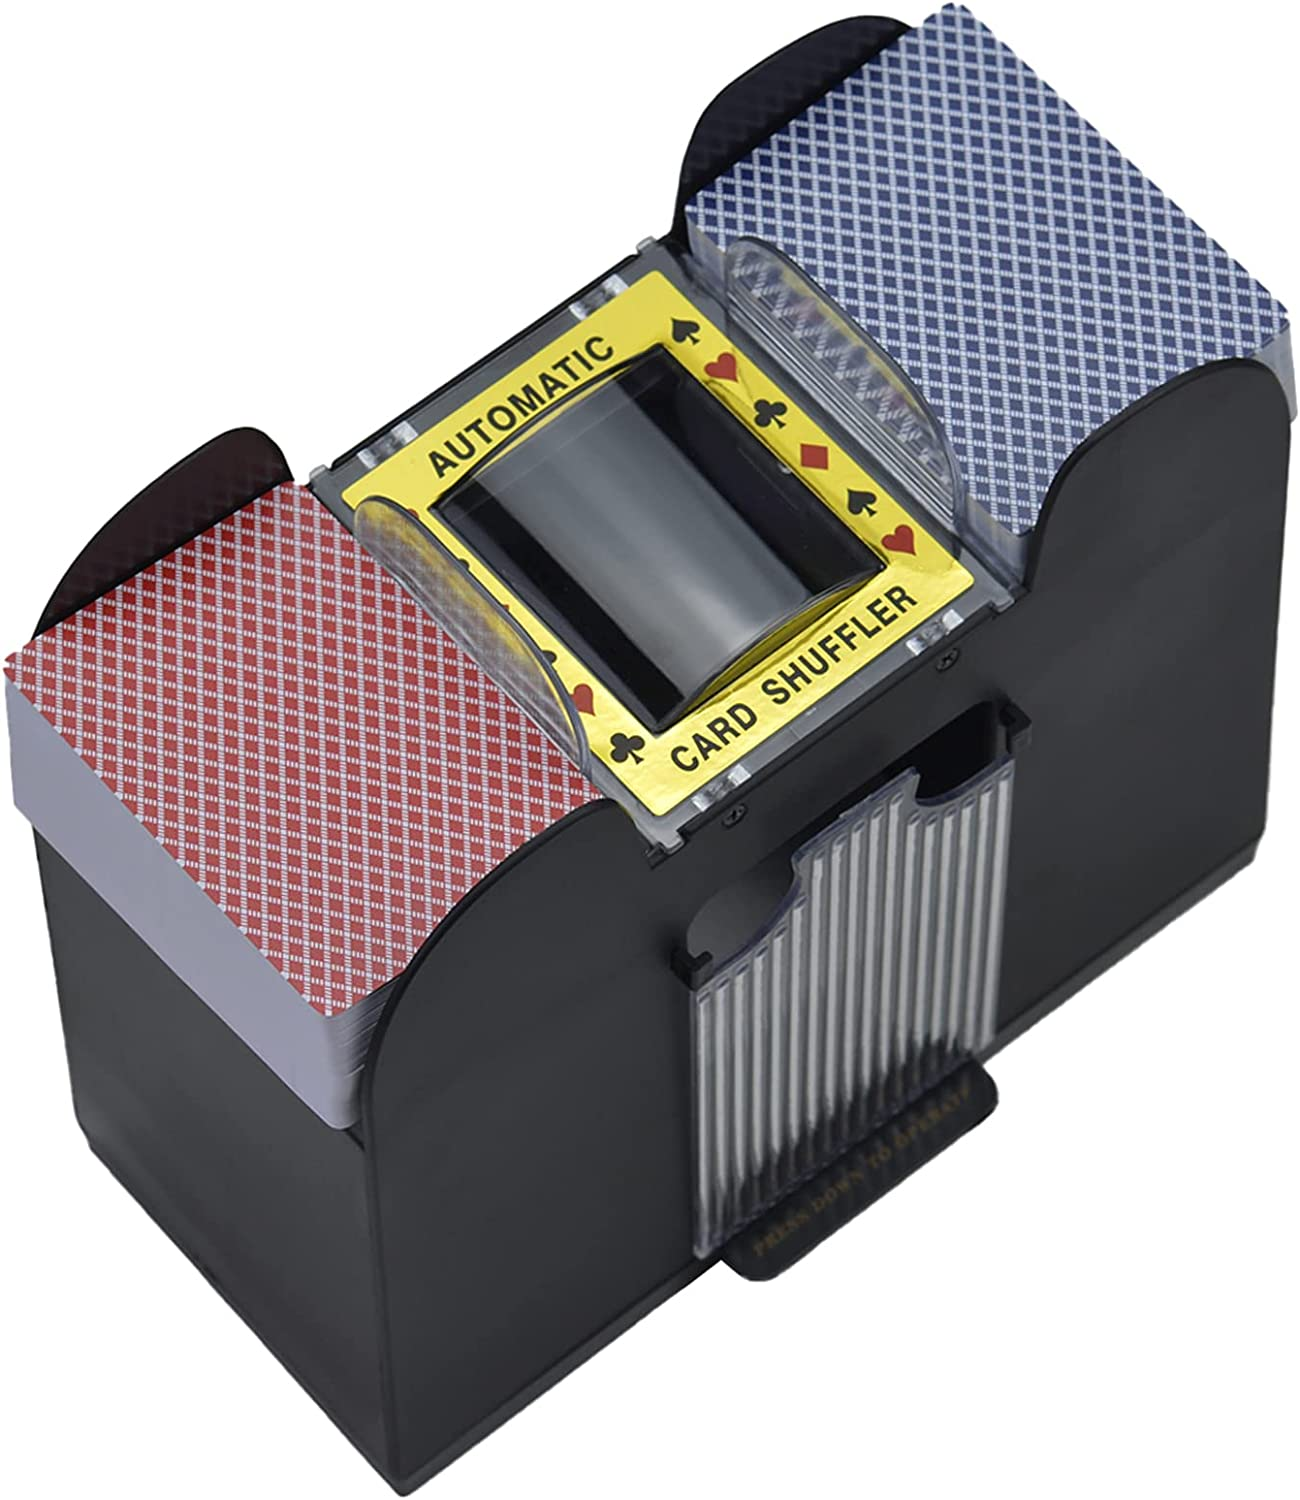 Nileole 1-6 Popular products Decks Ranking TOP6 Automatic Card Shuffler Elec Battery-Operated